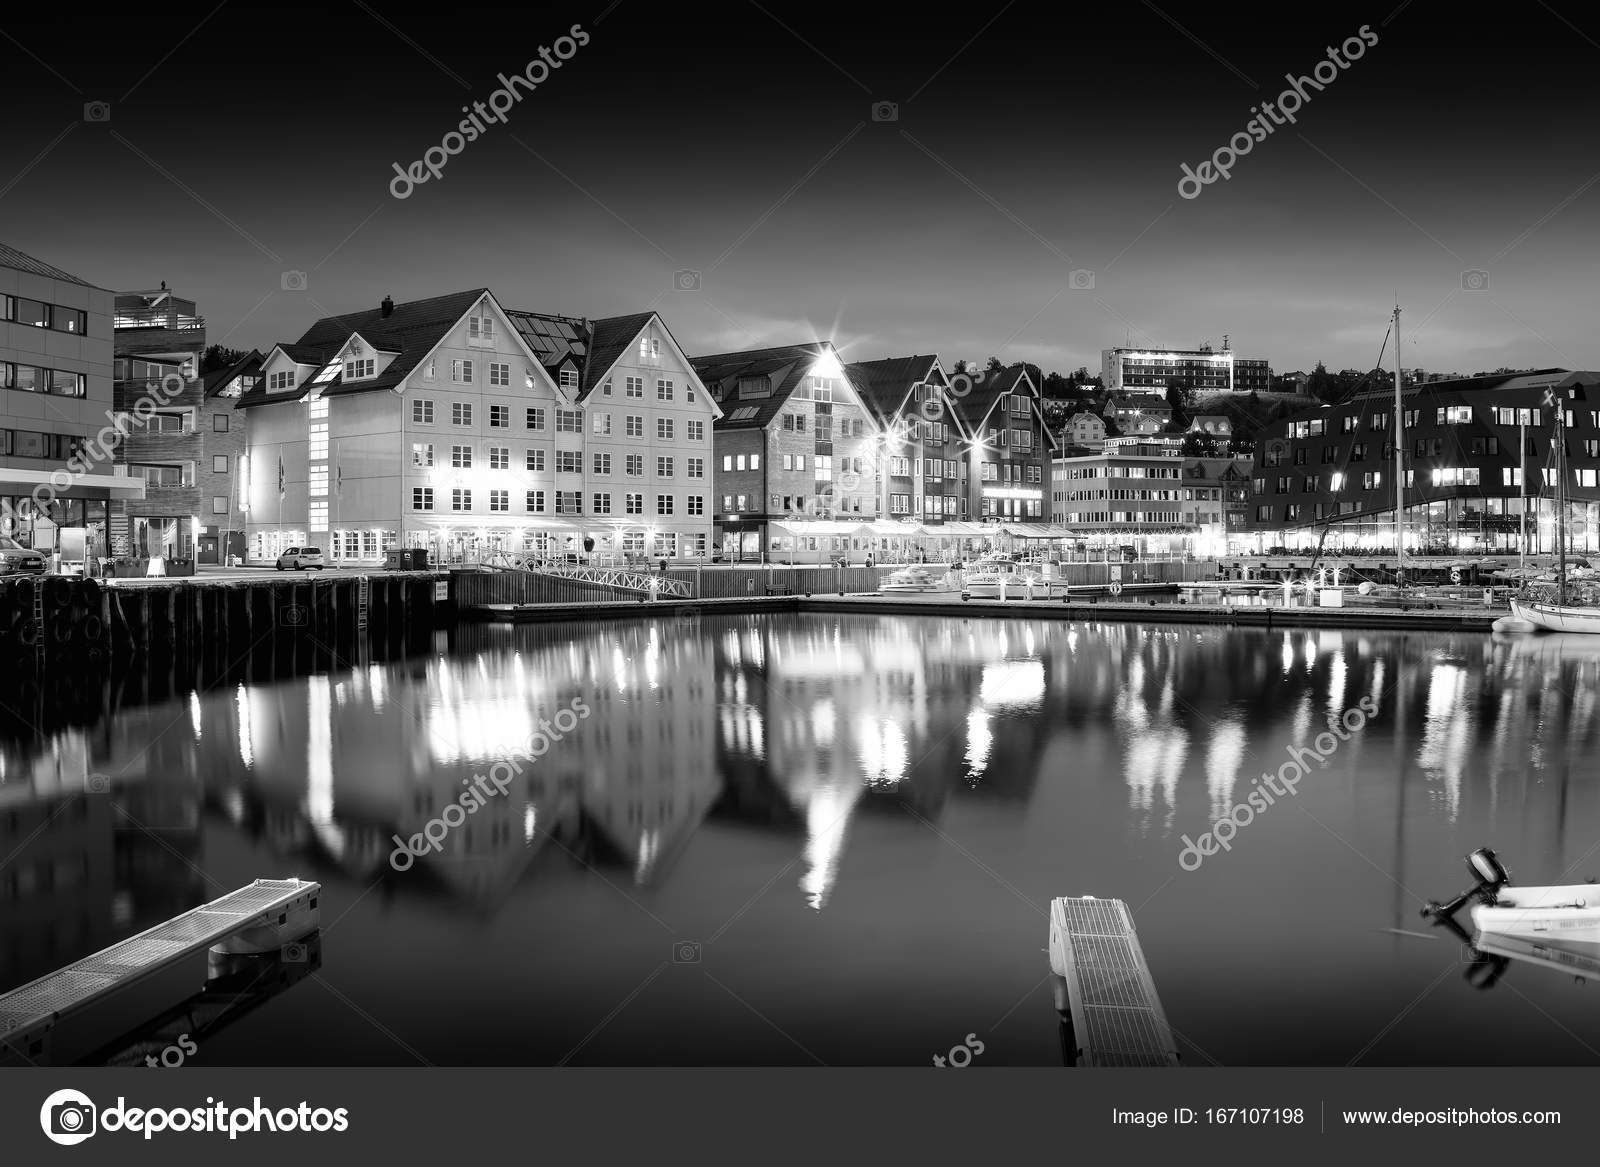 Tromso Night Black And White City Background Stock Photo